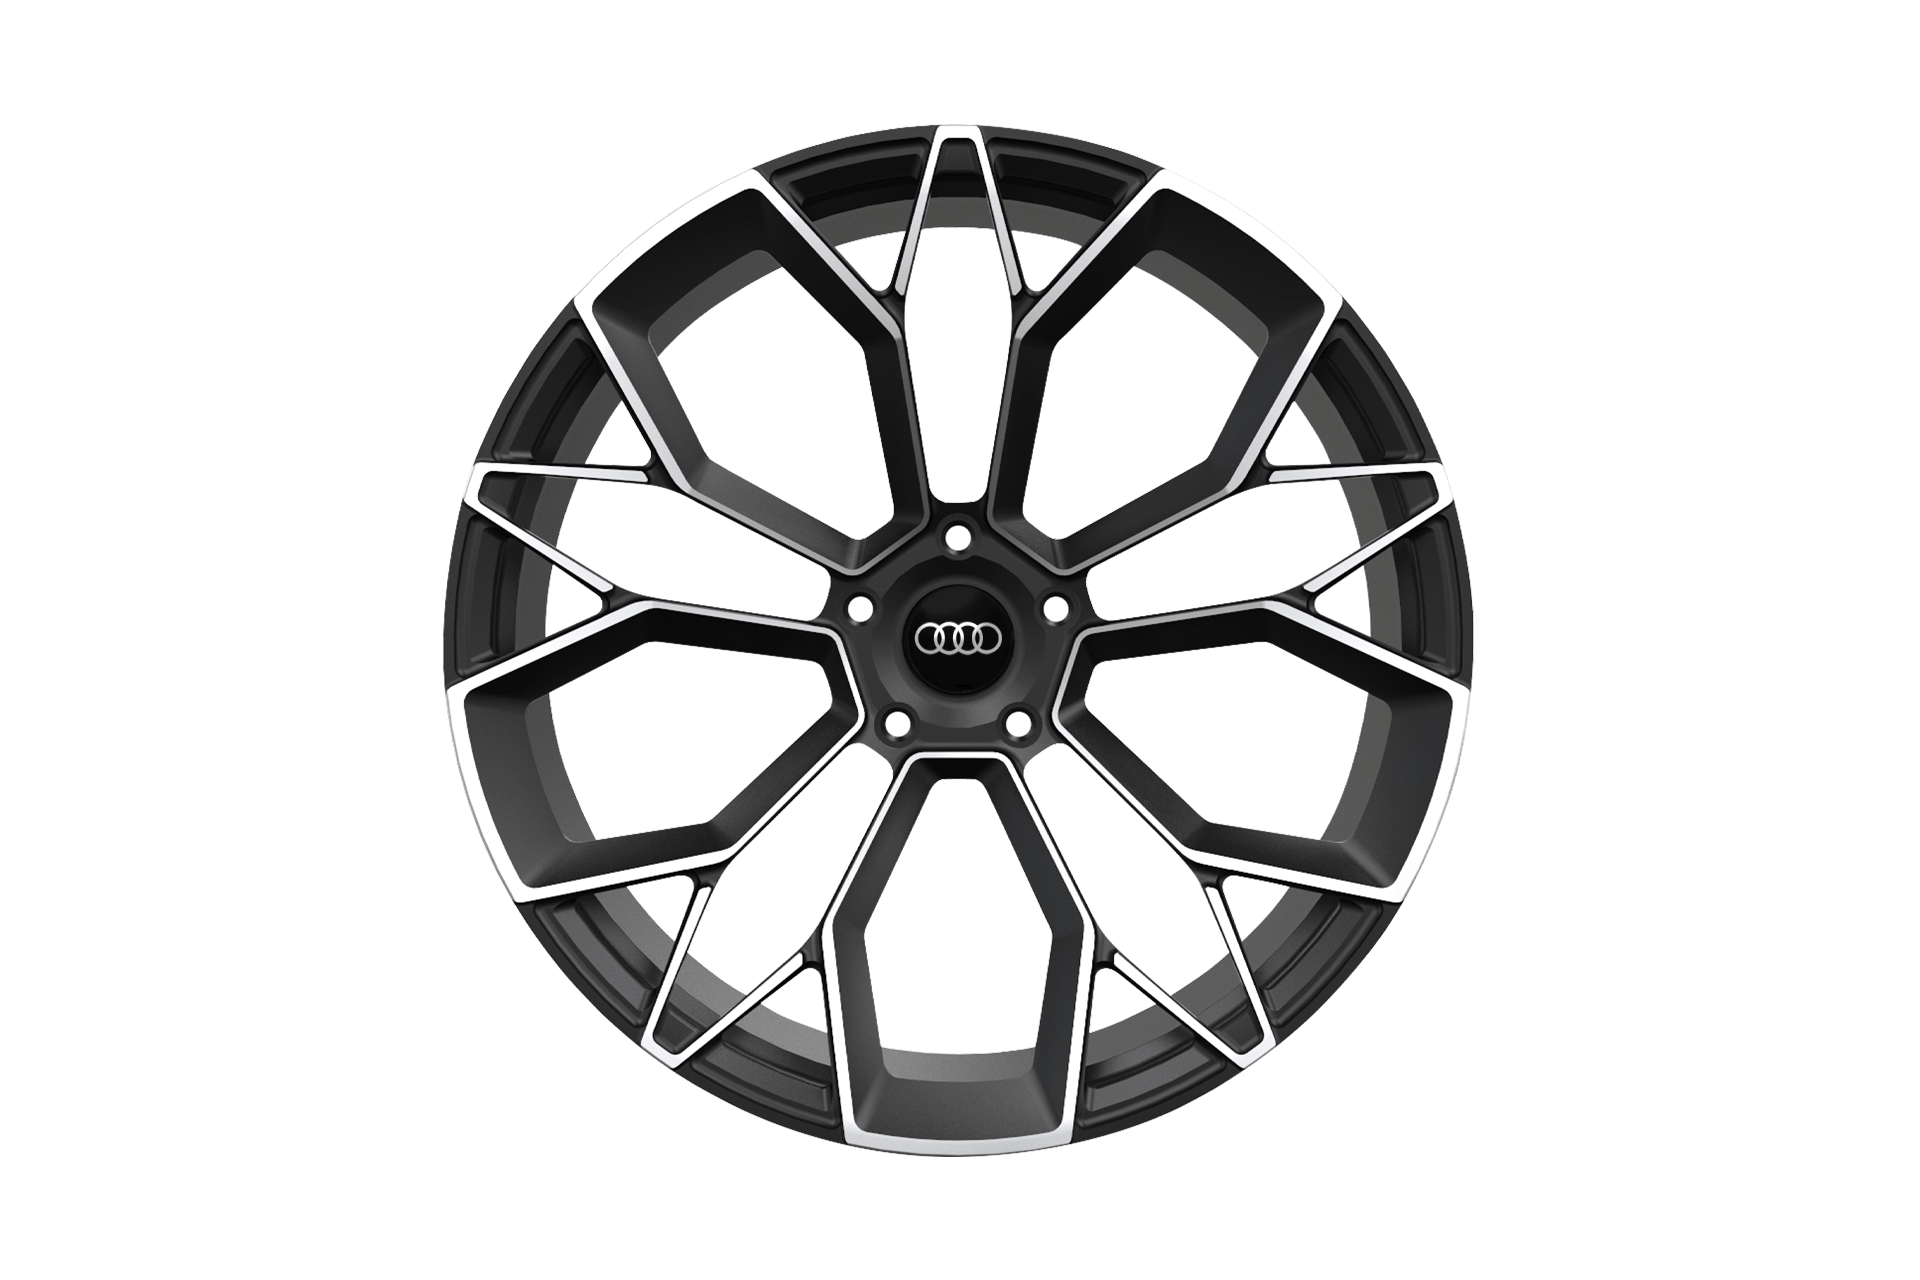 Audi RS Q8 Type 53 Forged Light Alloy Wheels - Project Kahn